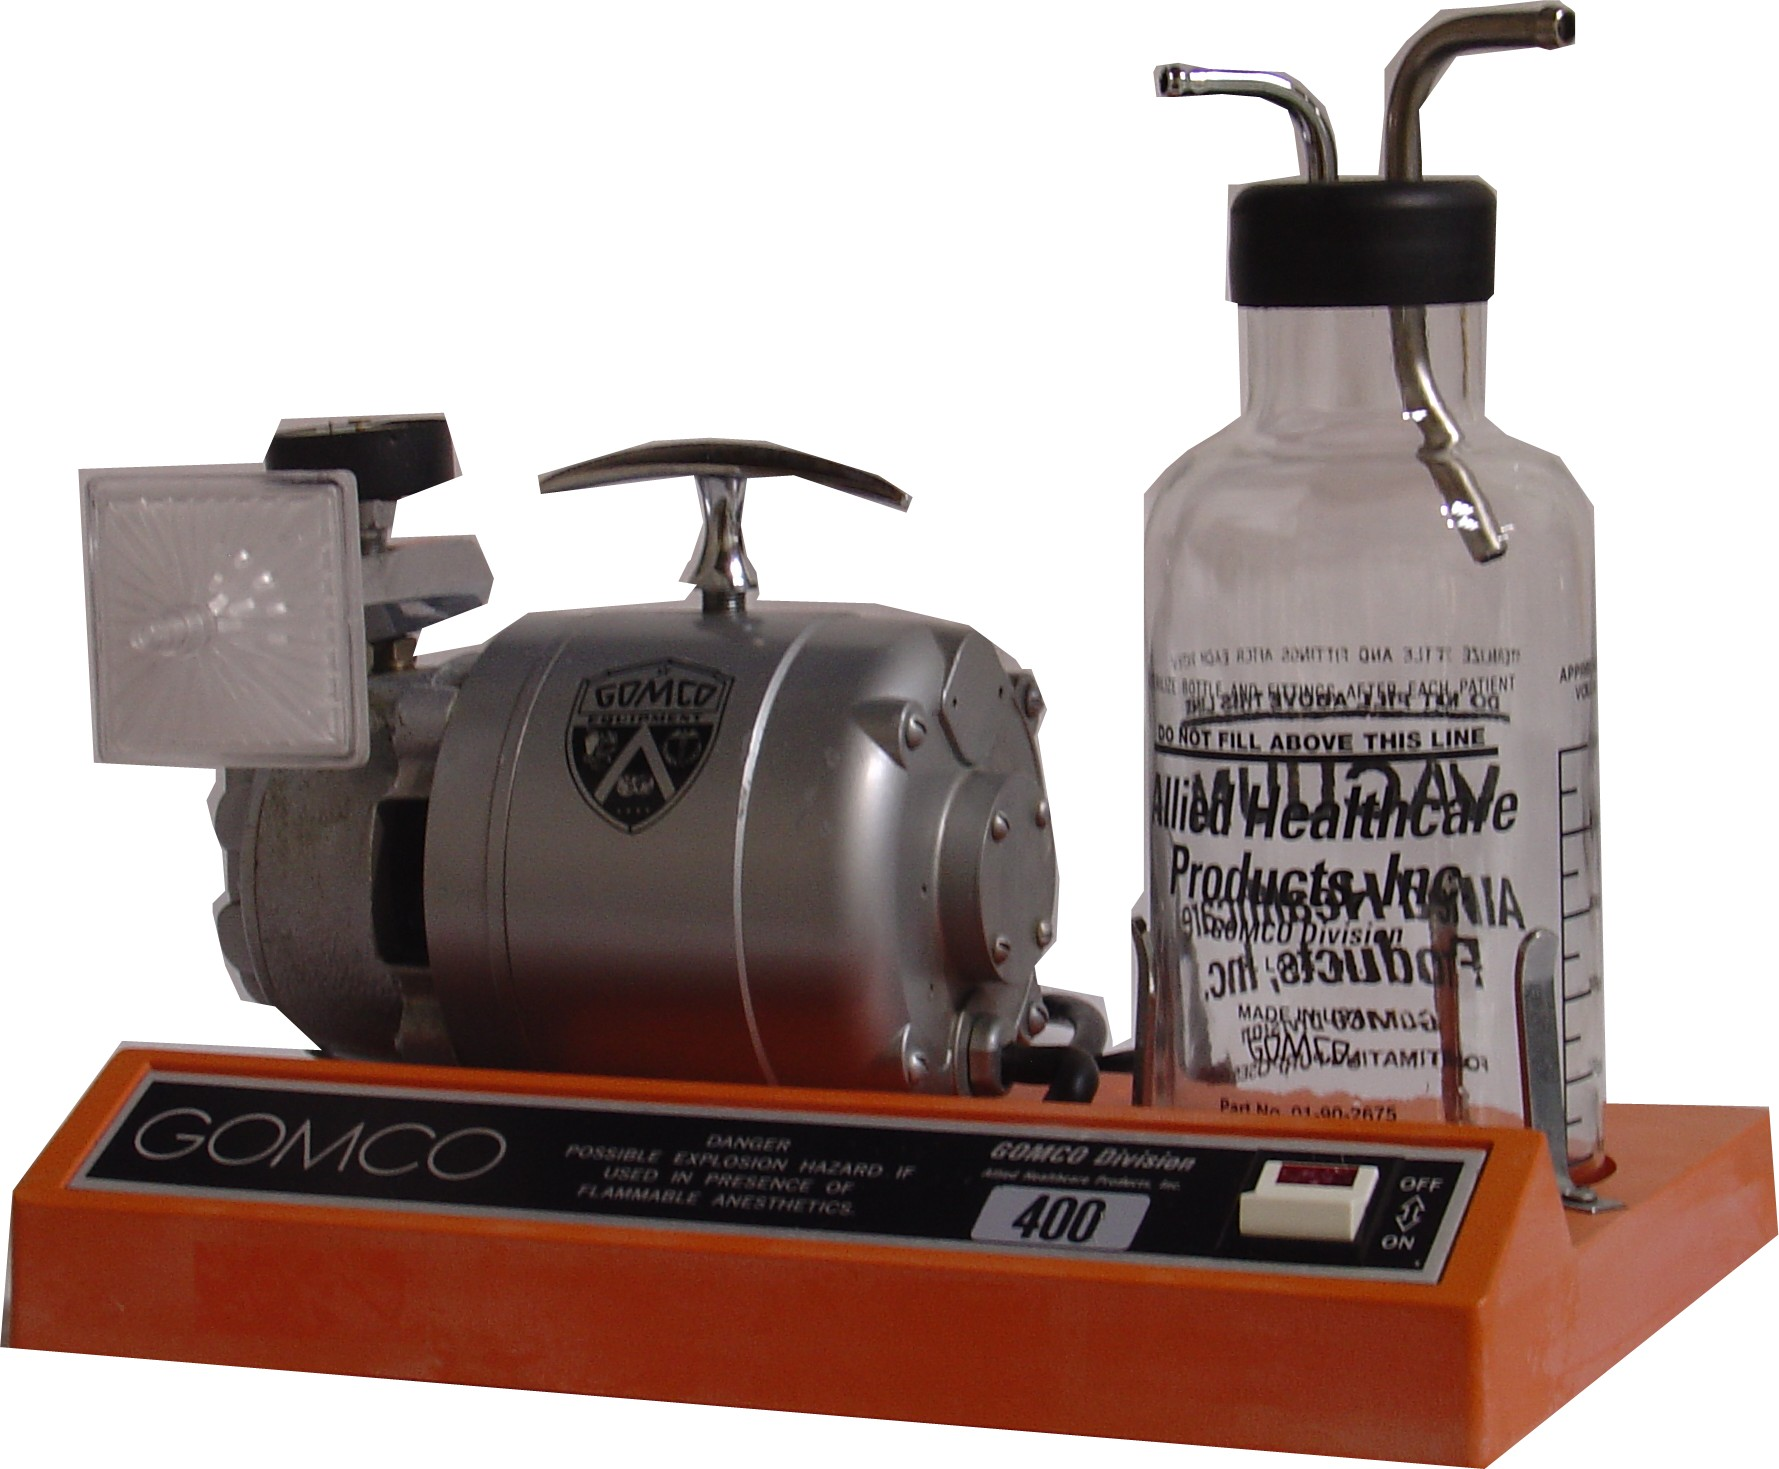 gomco suction machine